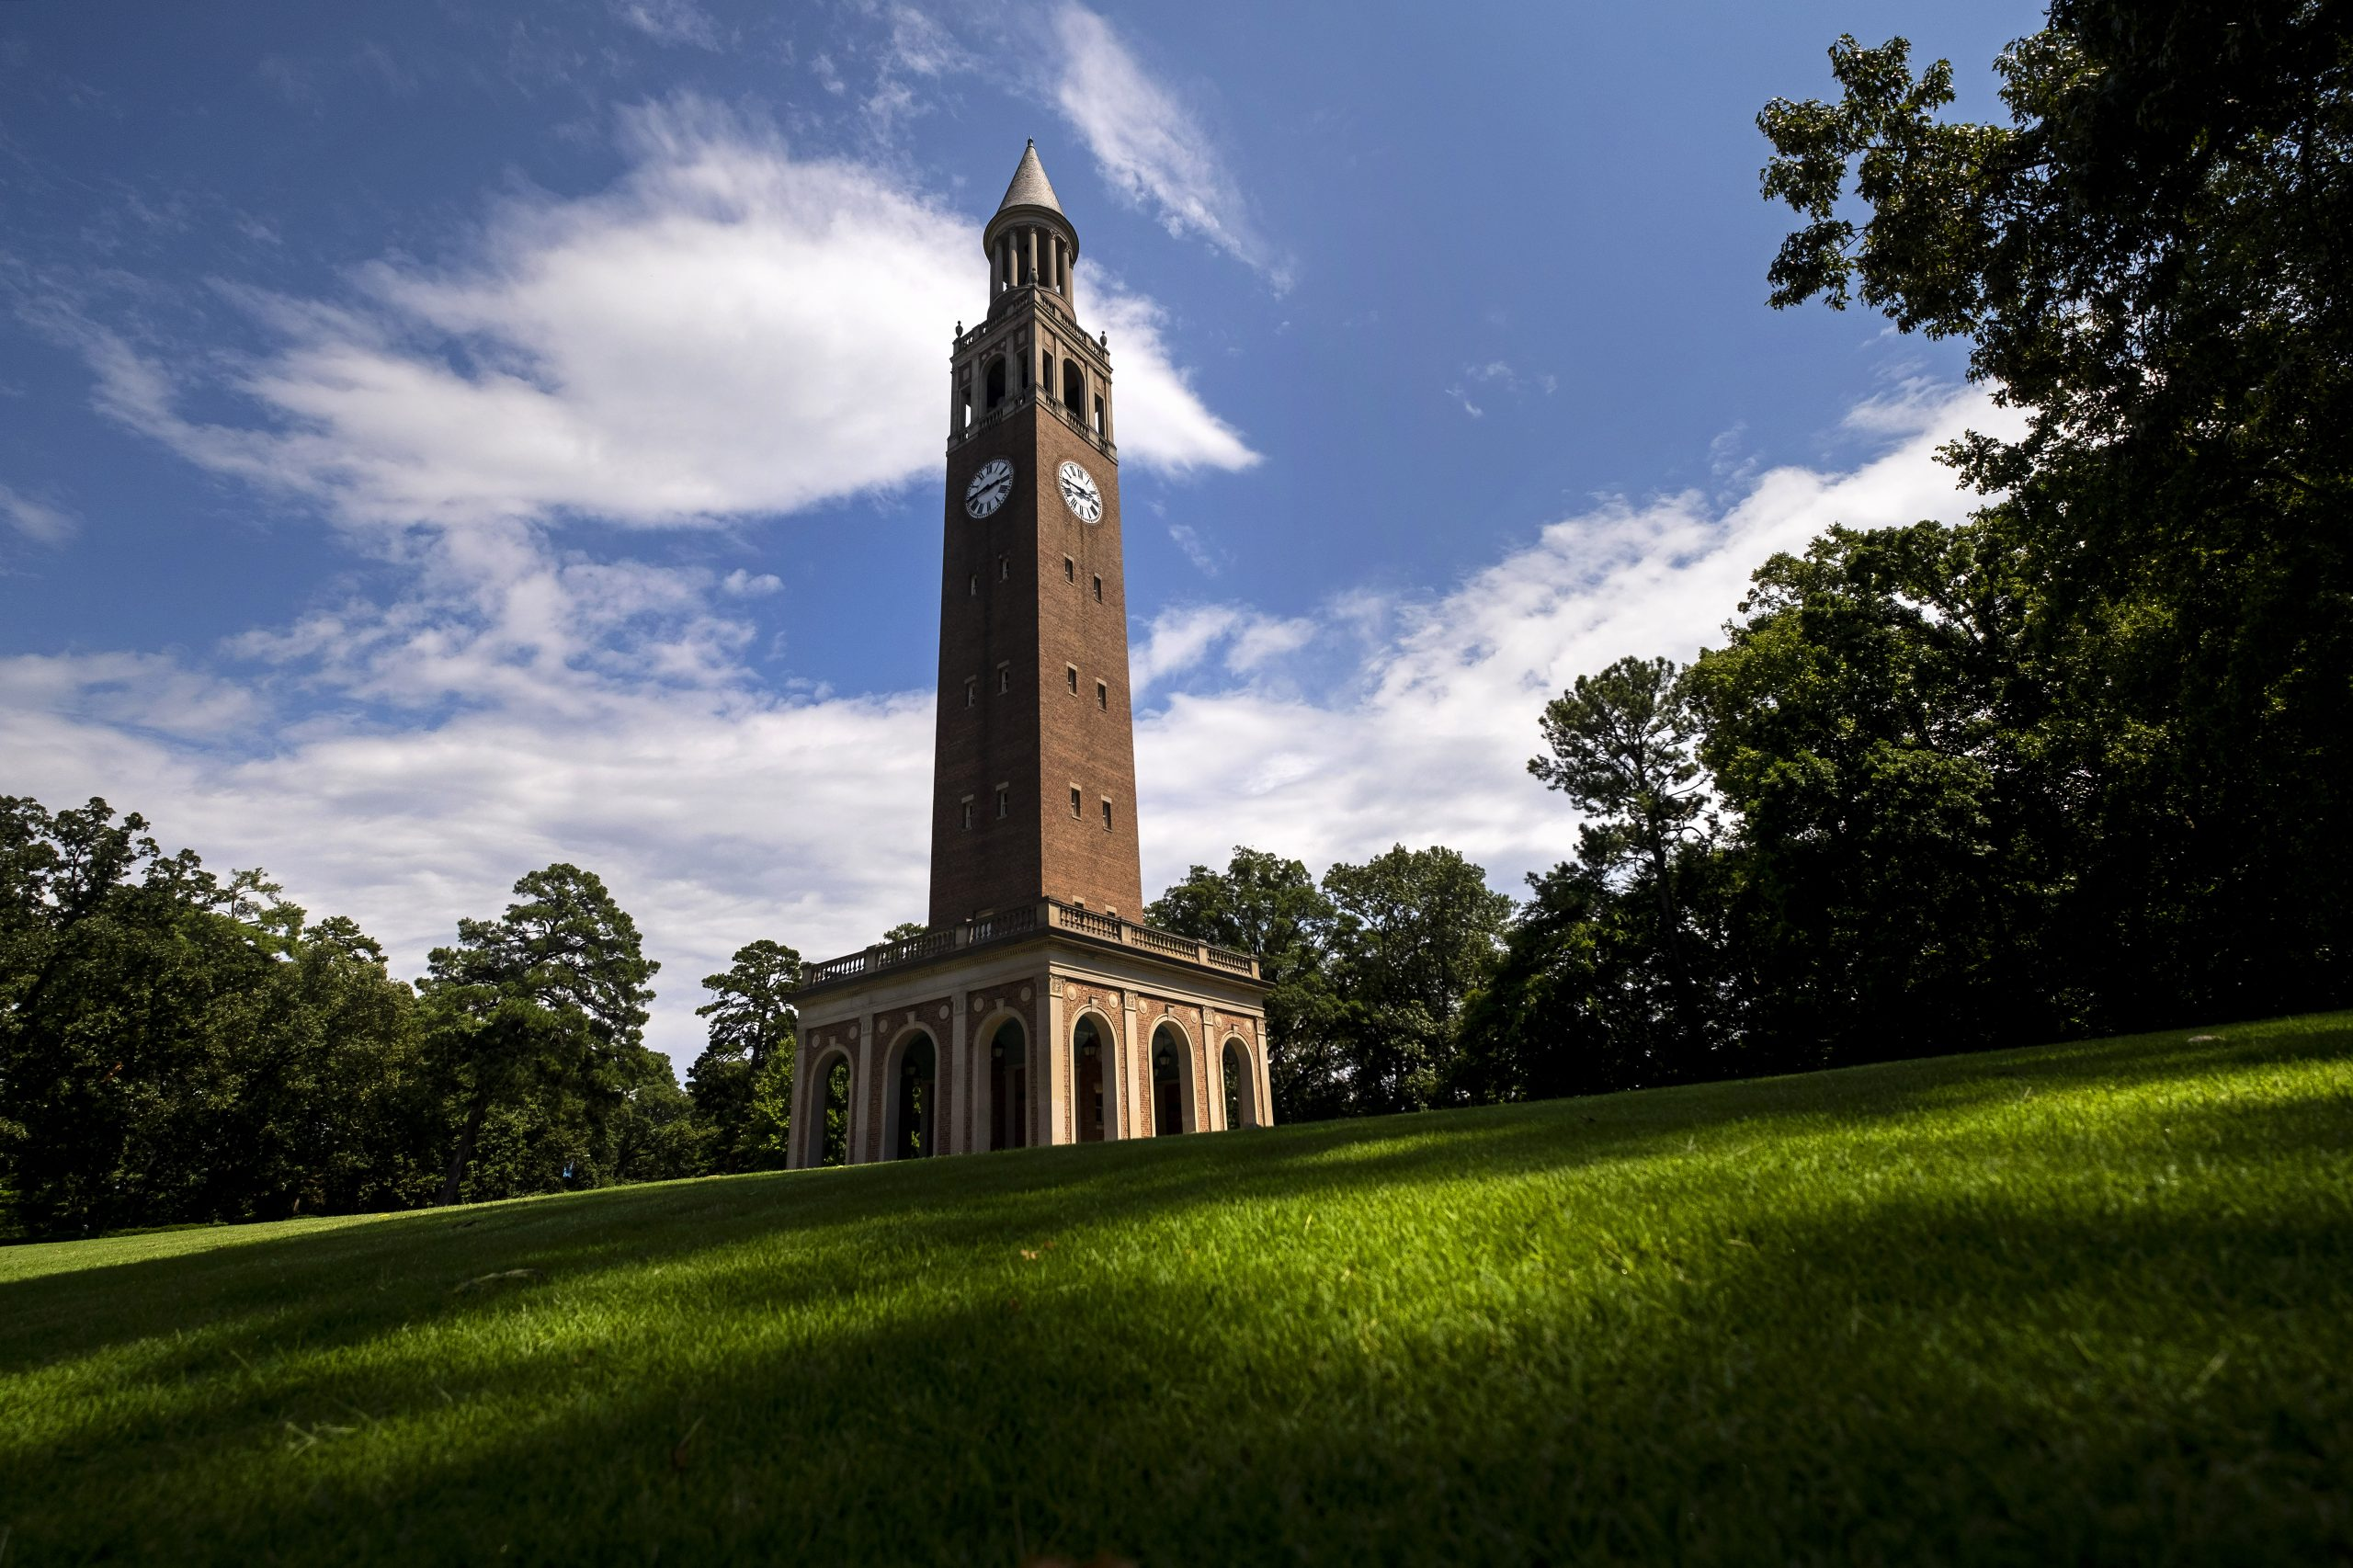 Bell tower in the sun.